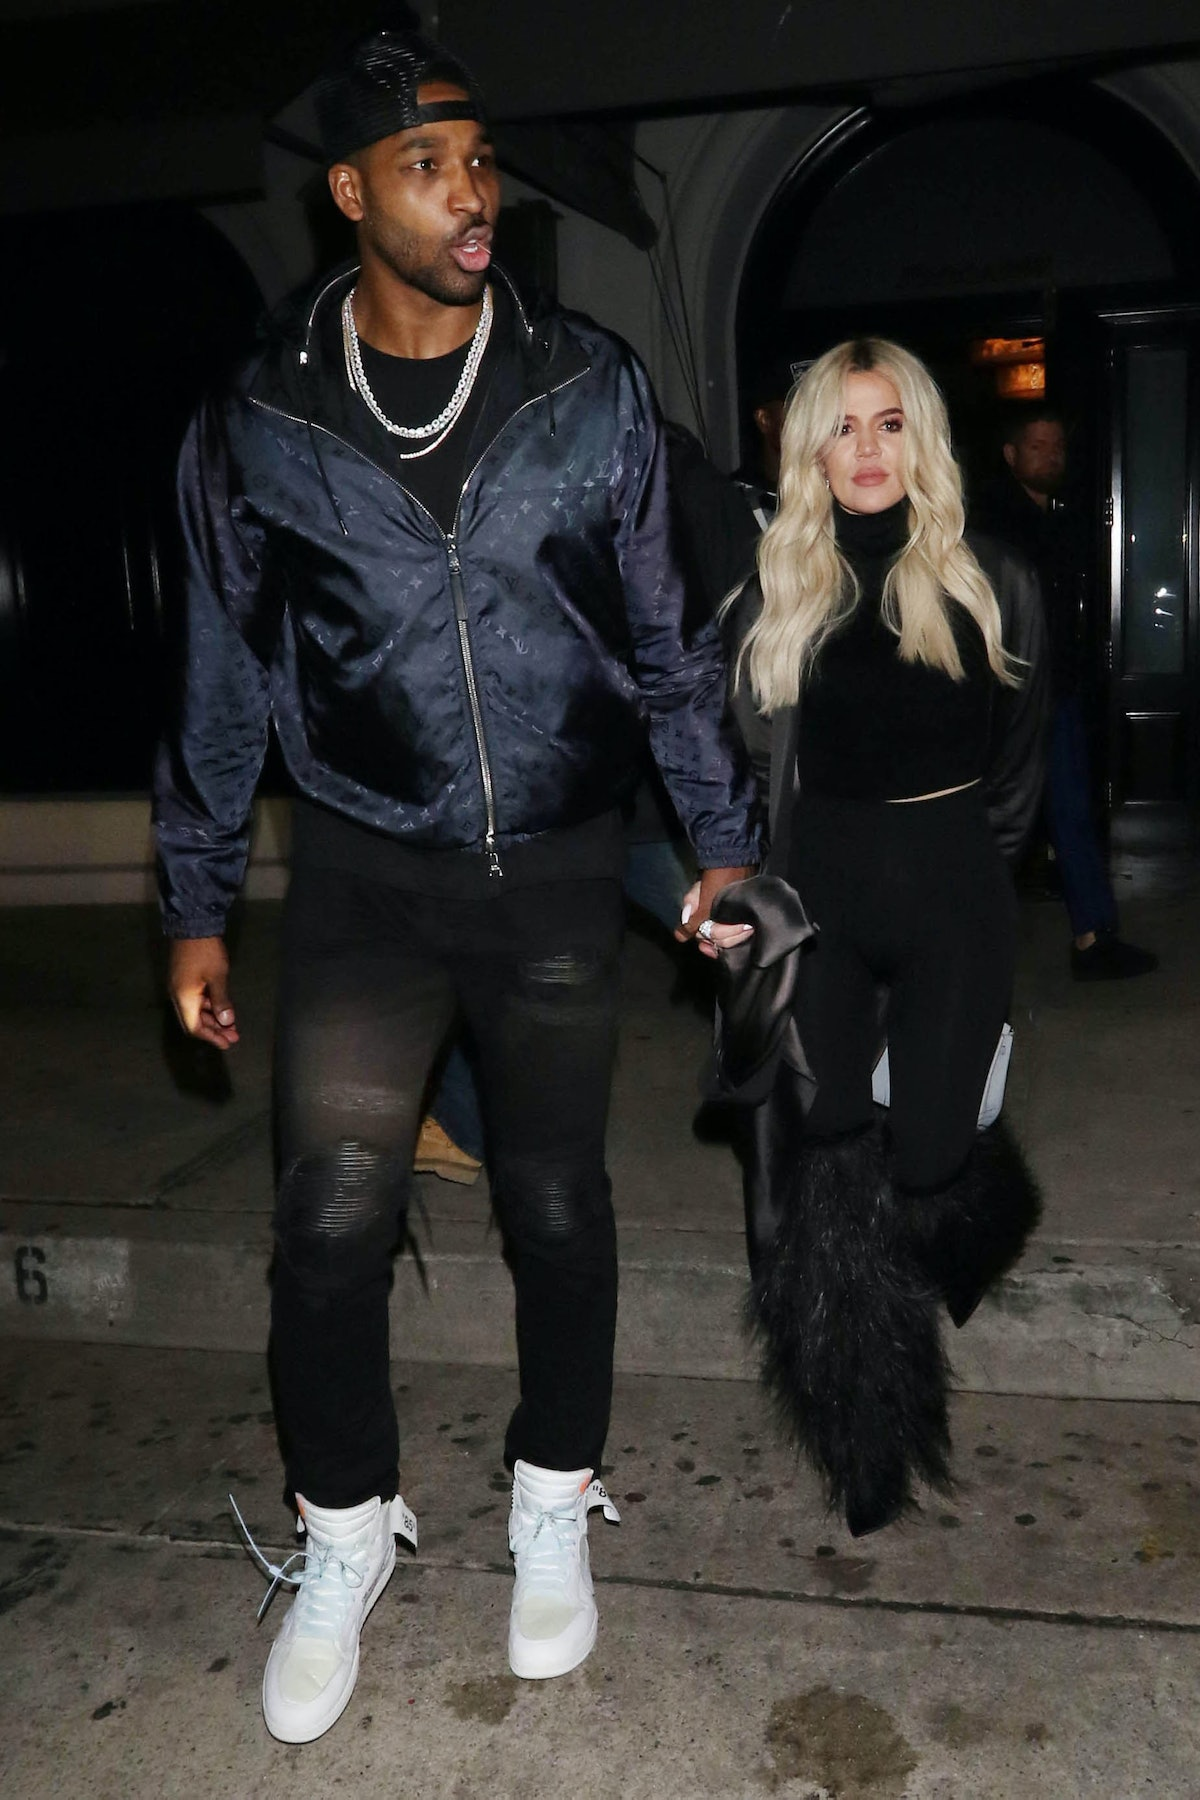 LOS ANGELES, CA - JANUARY 13:  Khloe Kardashian and Tristan Thompson are seen on January 13, 2019 in...